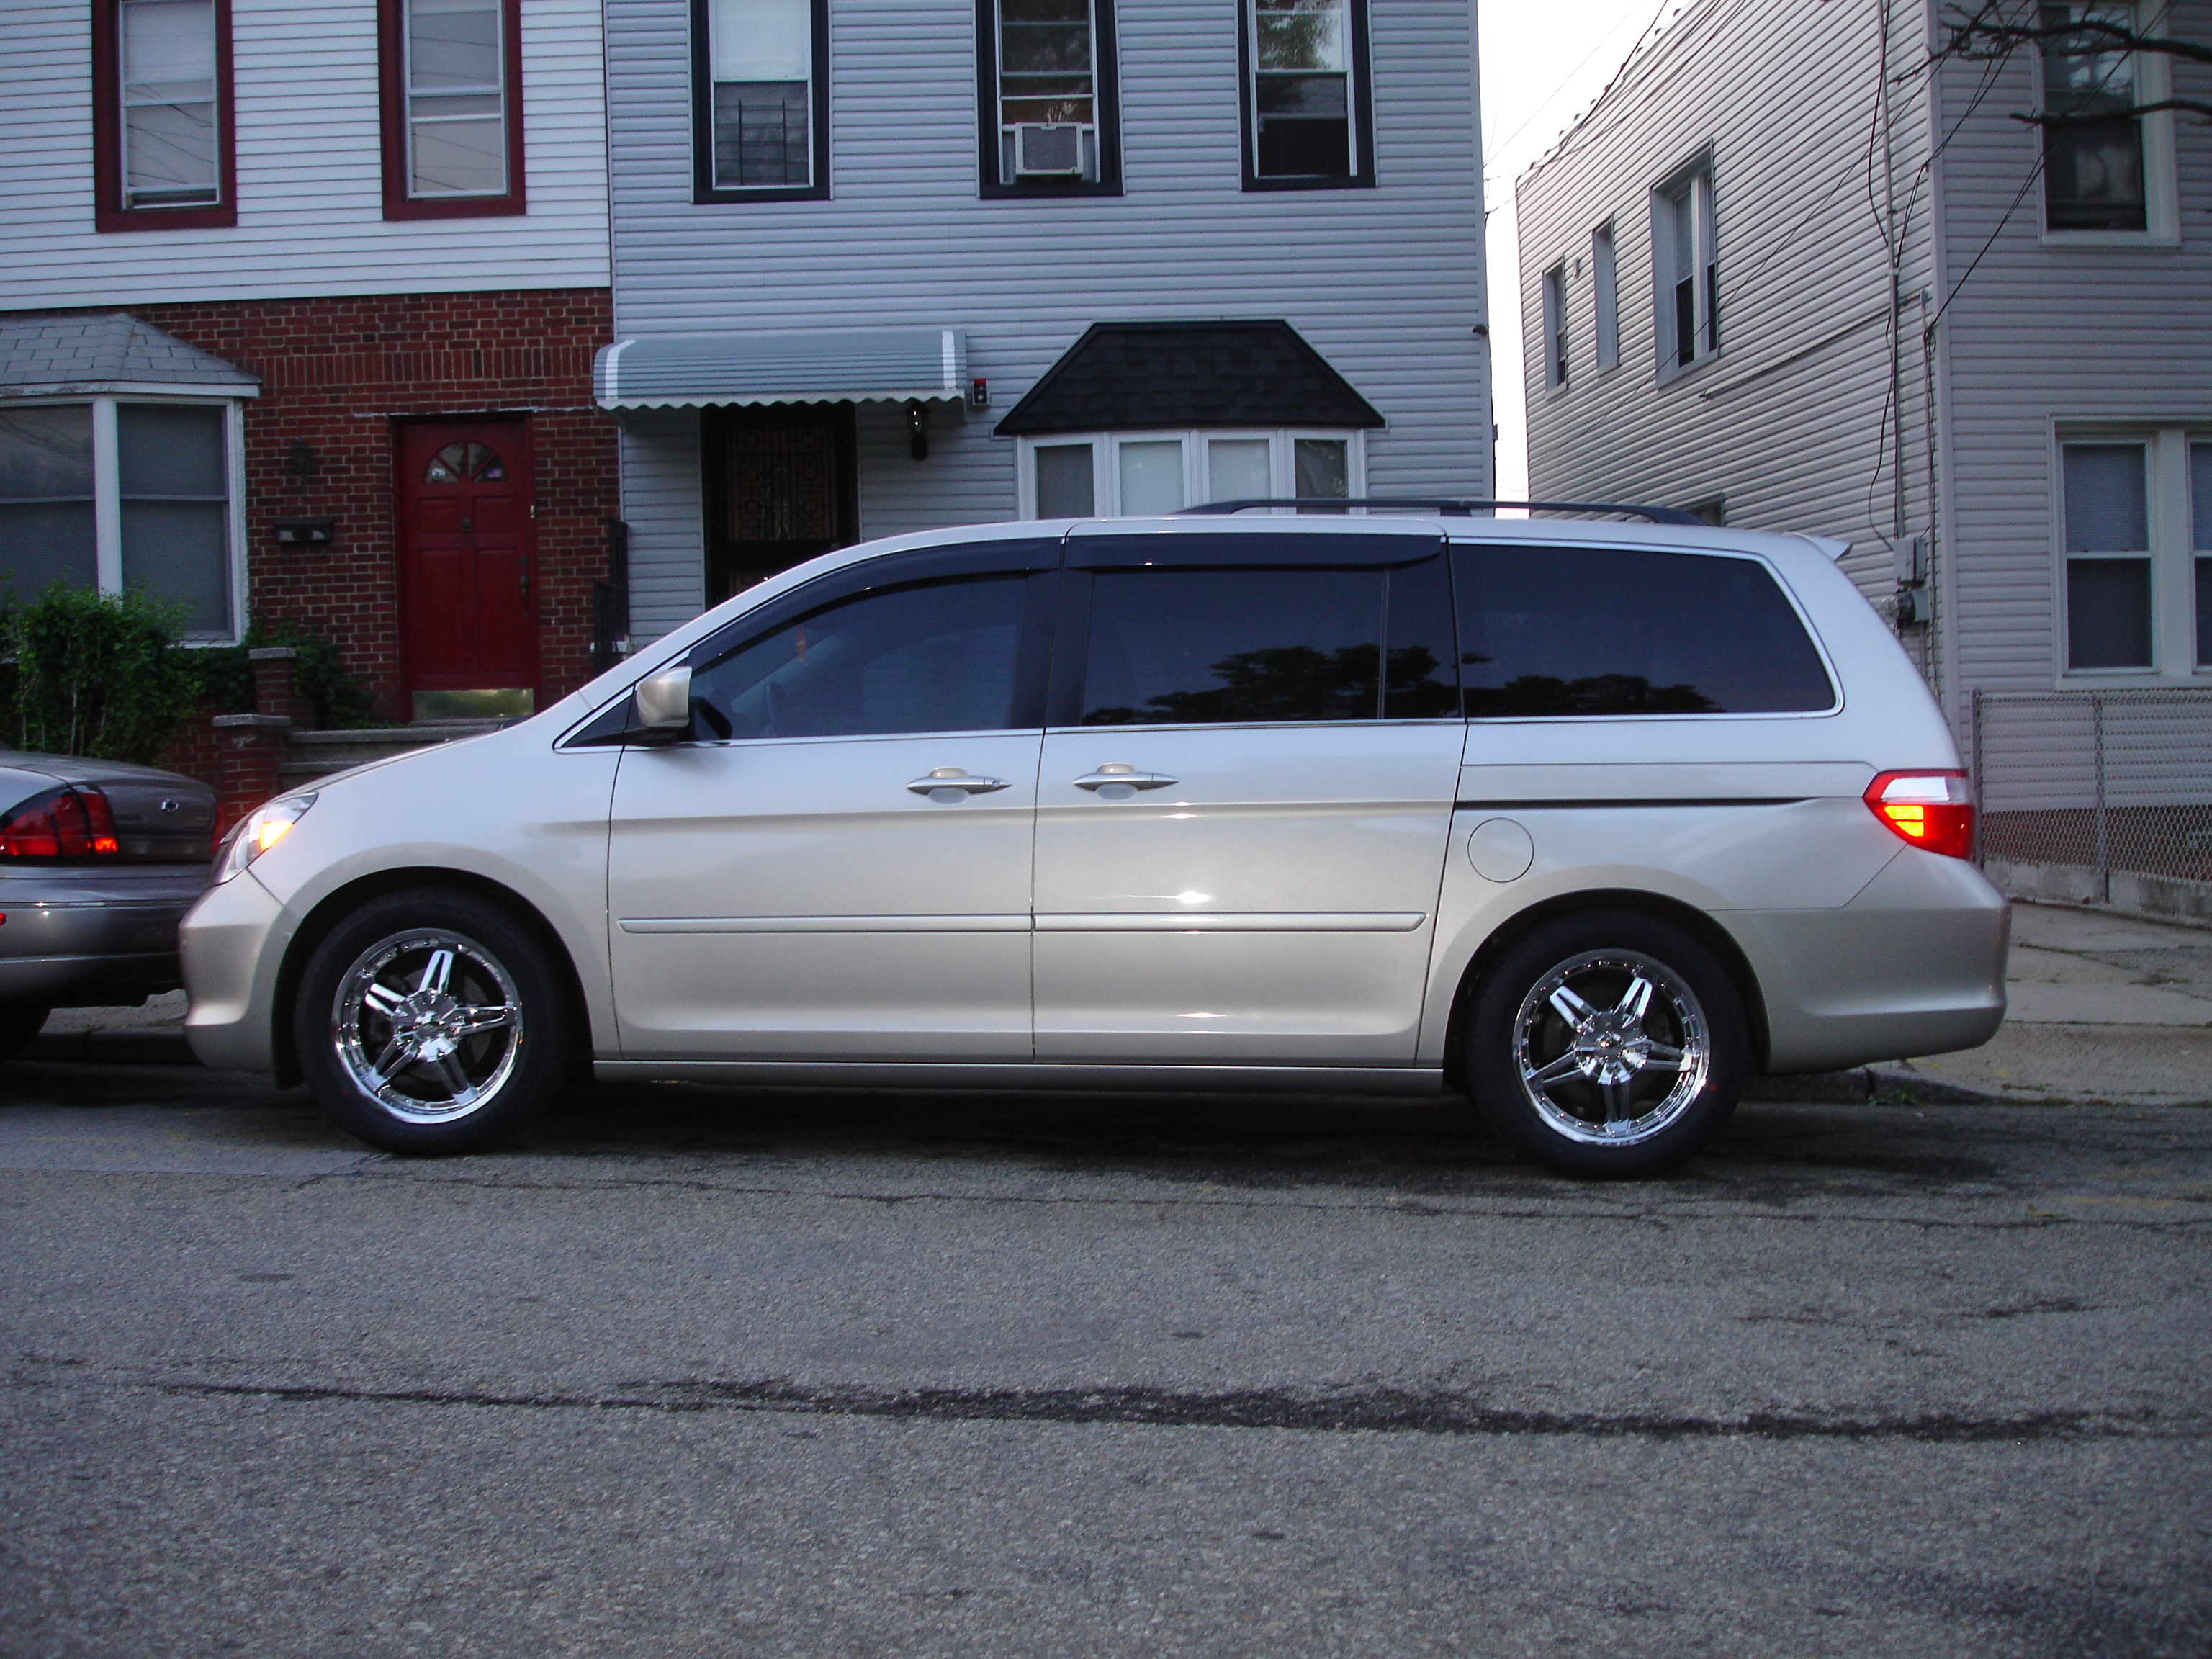 accessories product bar protection honda nudge dcho a odyssey fits models broadfeet